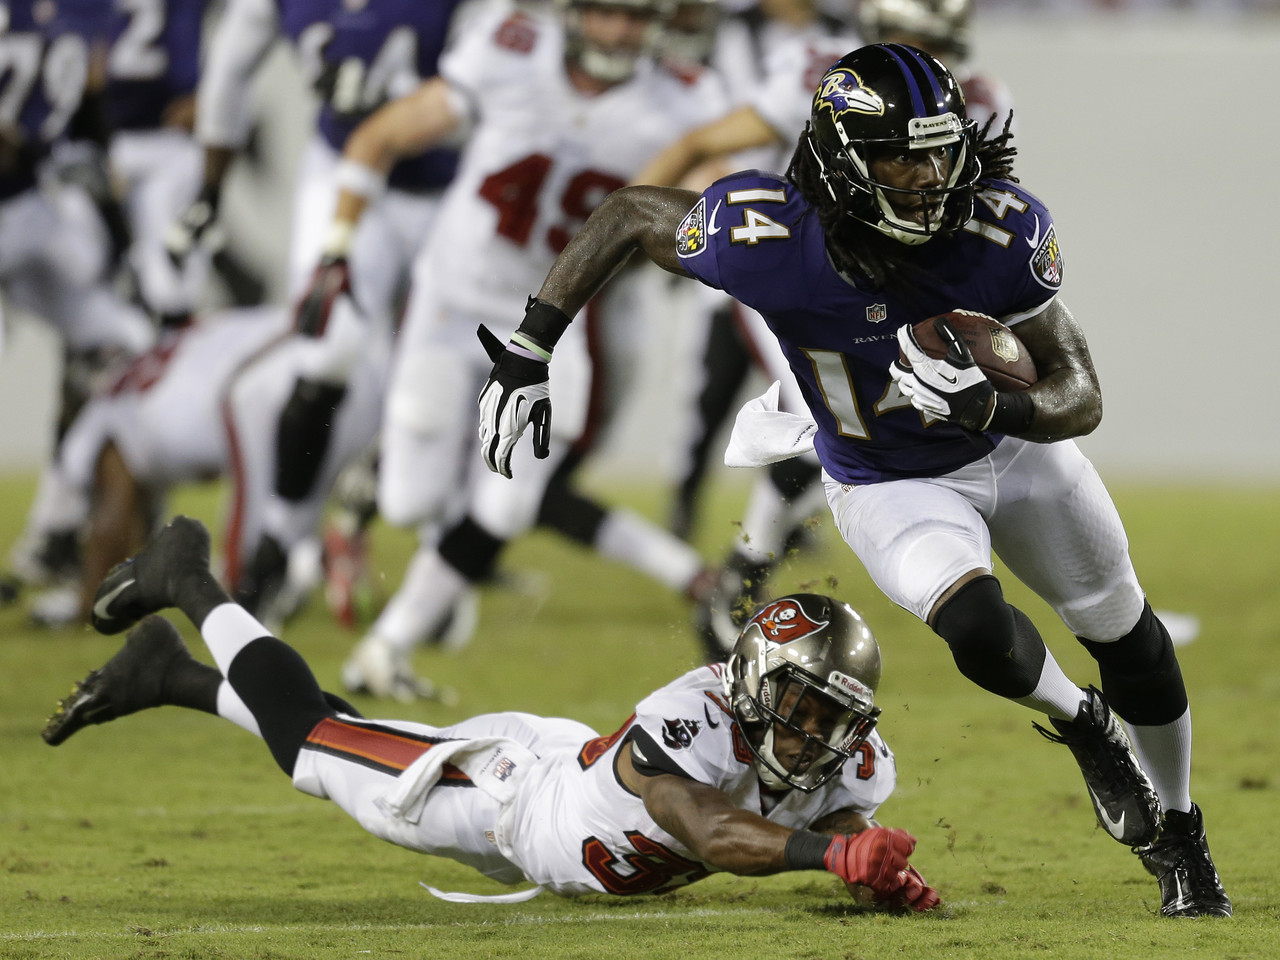 ravens-buccaneers-football-marlon-brown-branden-smith_pg_600